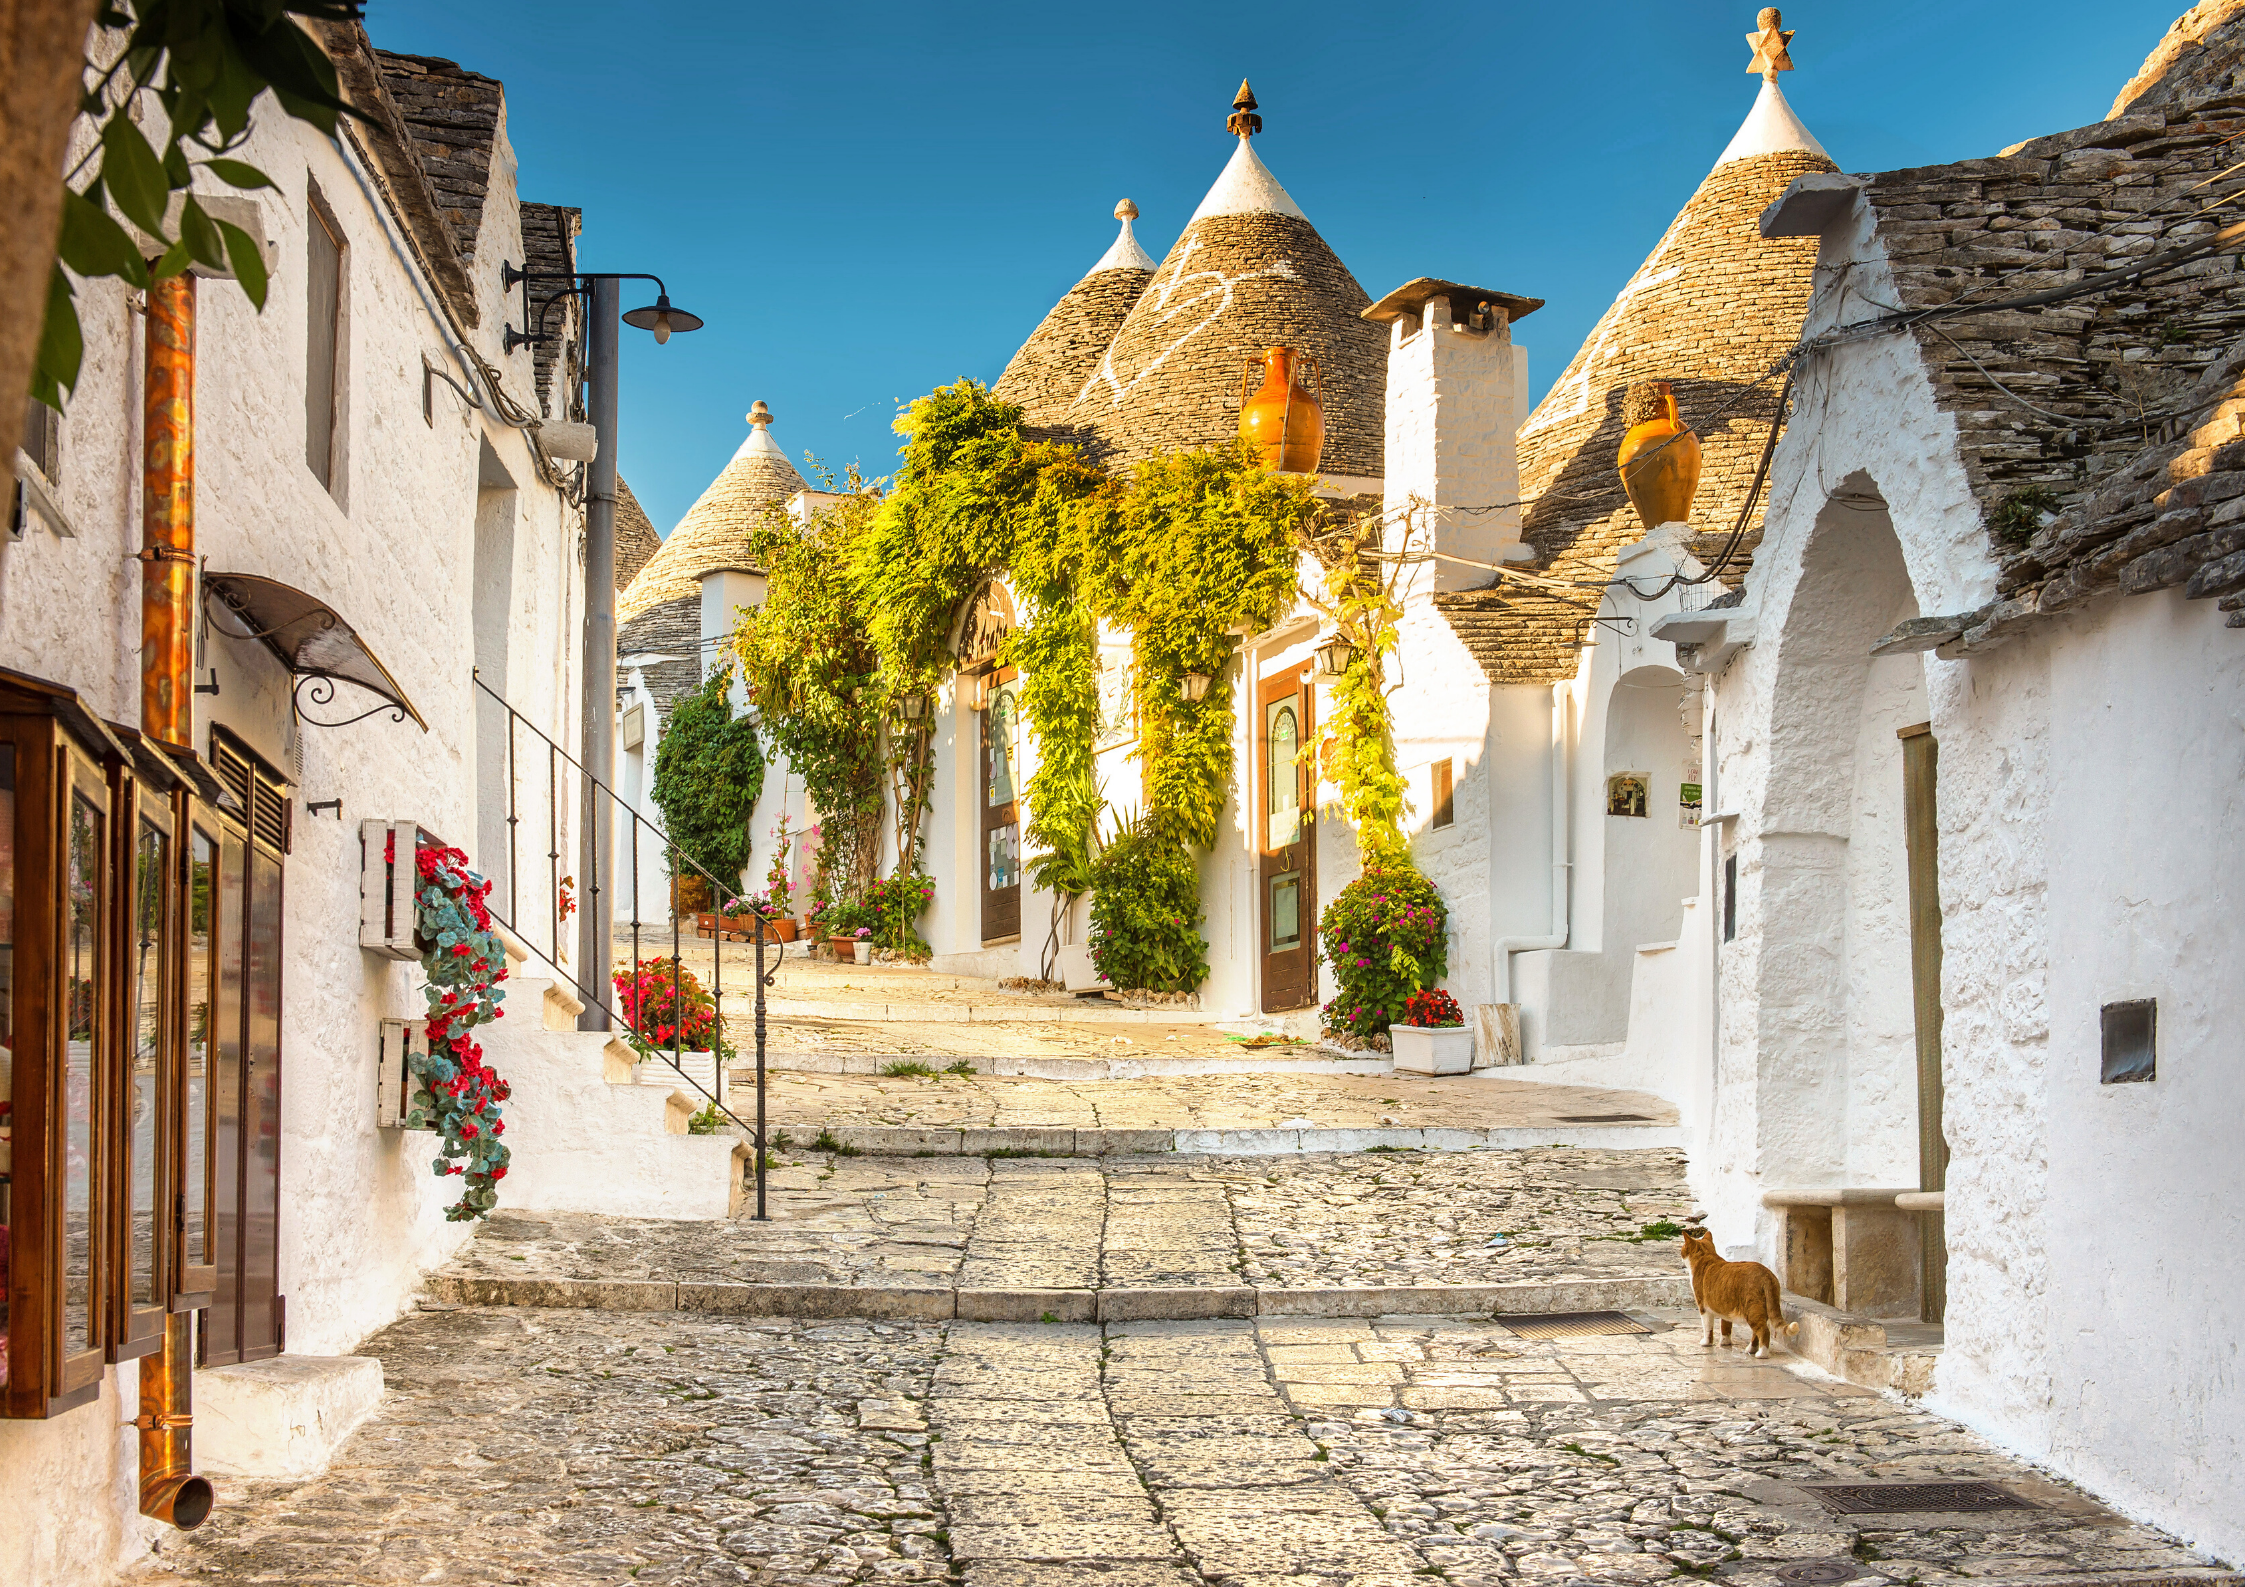 TOP CITIES TO VISIT IN PUGLIA, ITALY